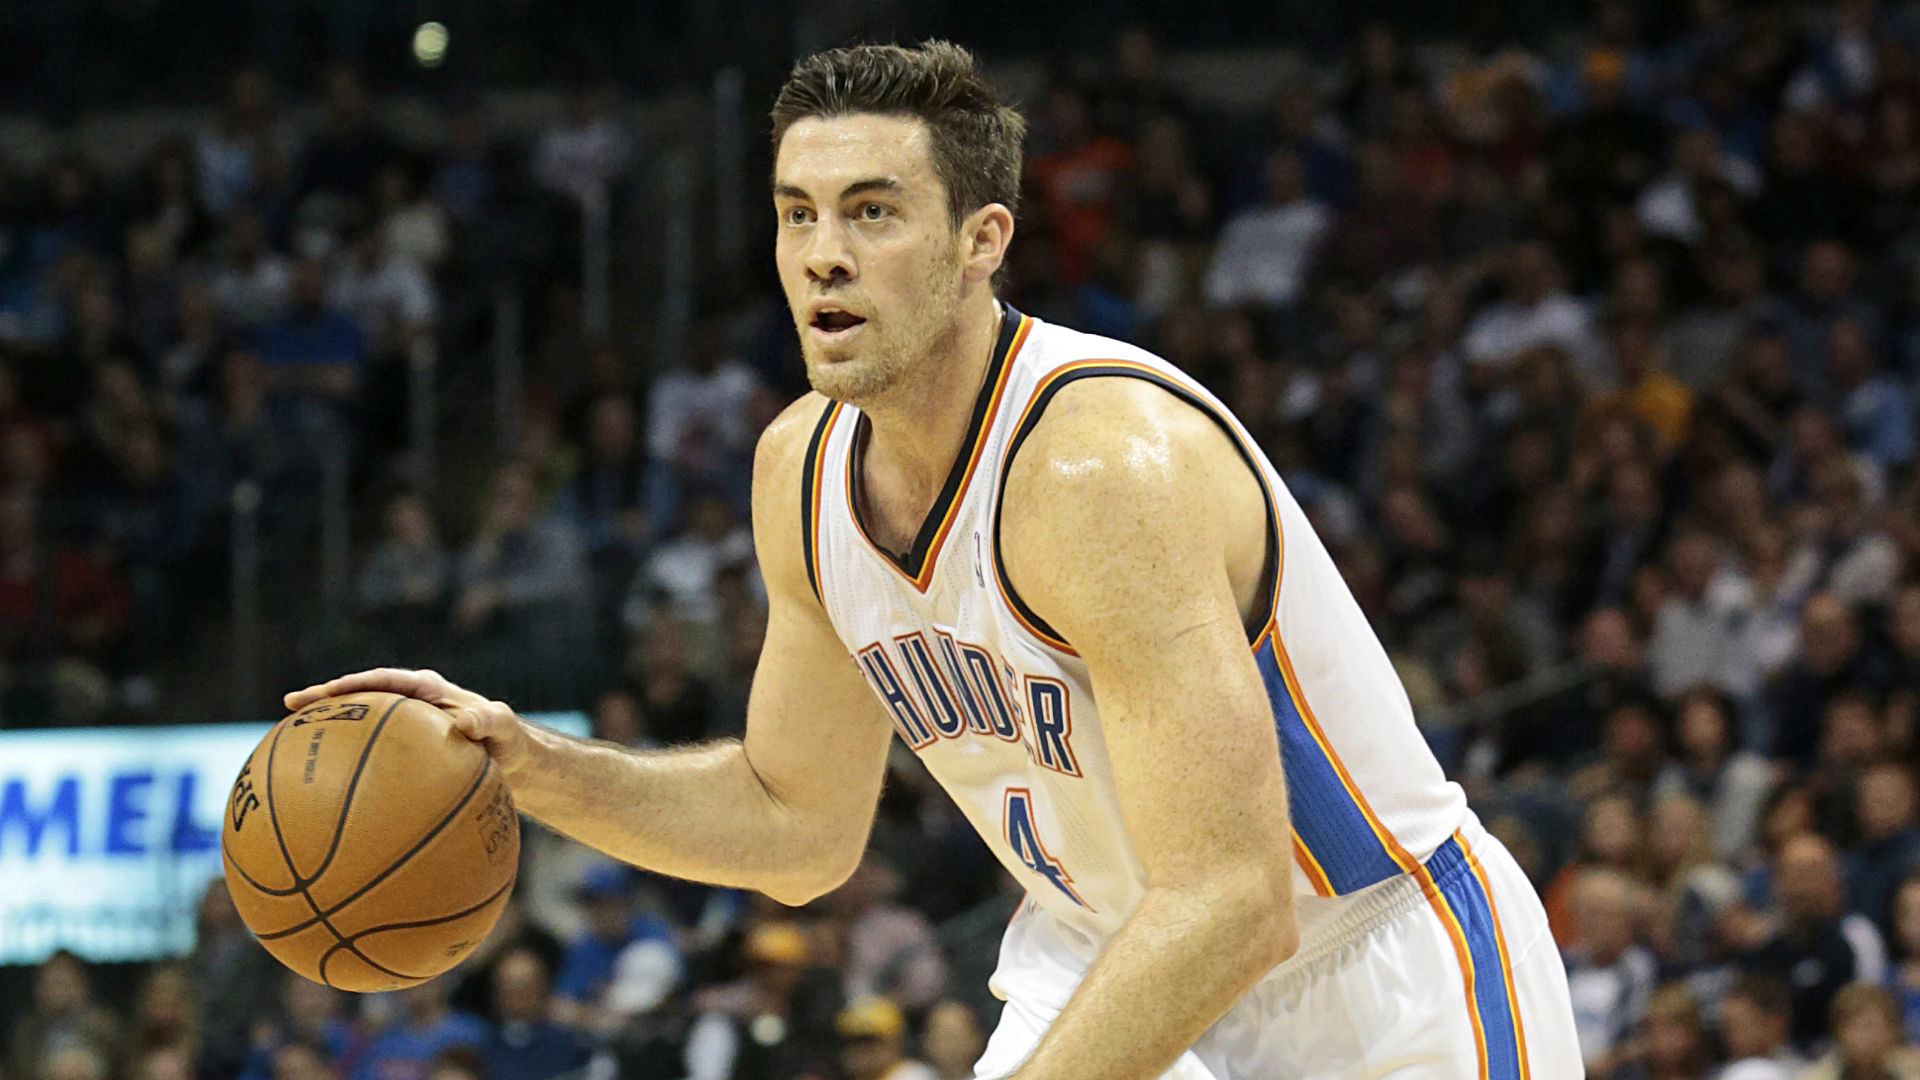 Thunder's Nick Collison Retiring After 15 Seasons